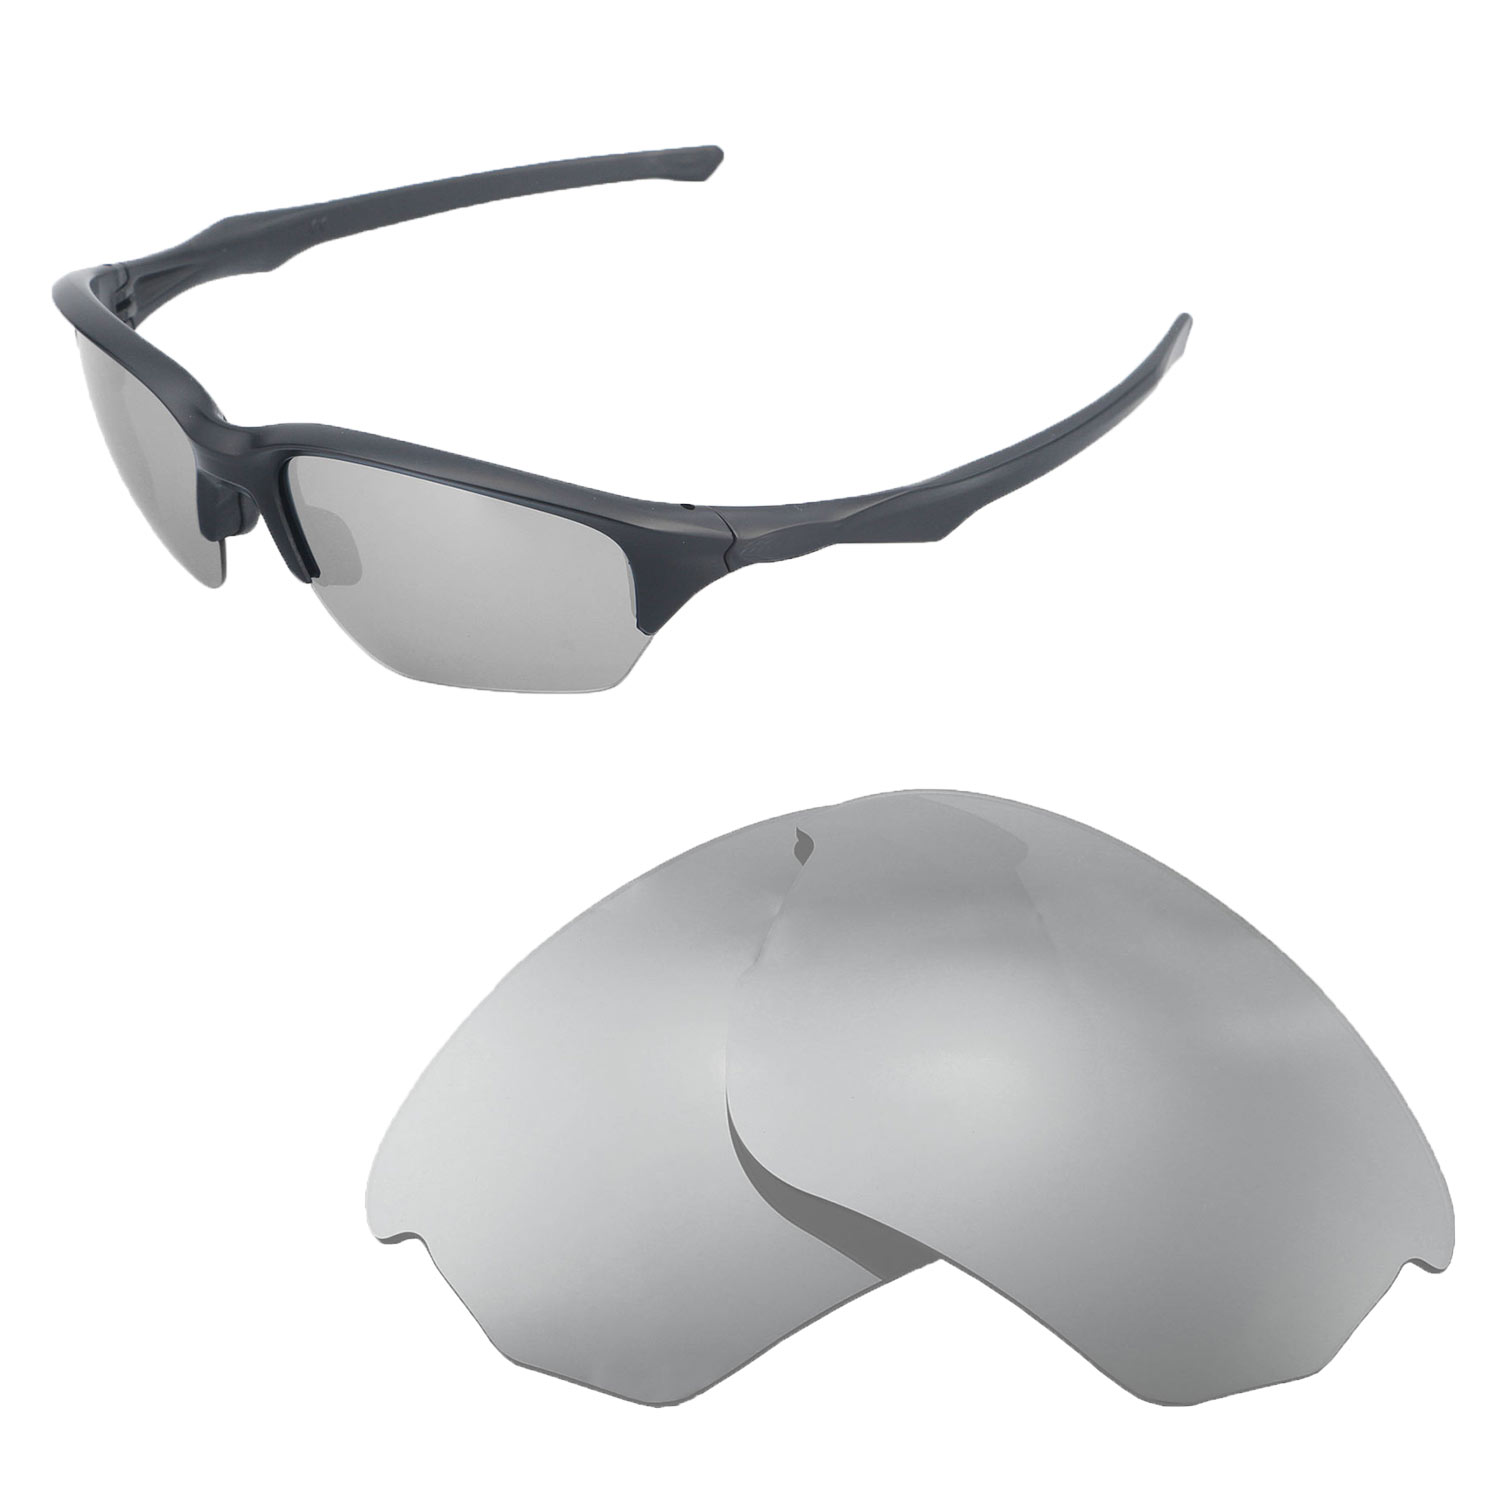 875bf9626ac Details about Walleva Polarized Titanium Replacement Lenses For Oakley Flak  Beta Sunglasses